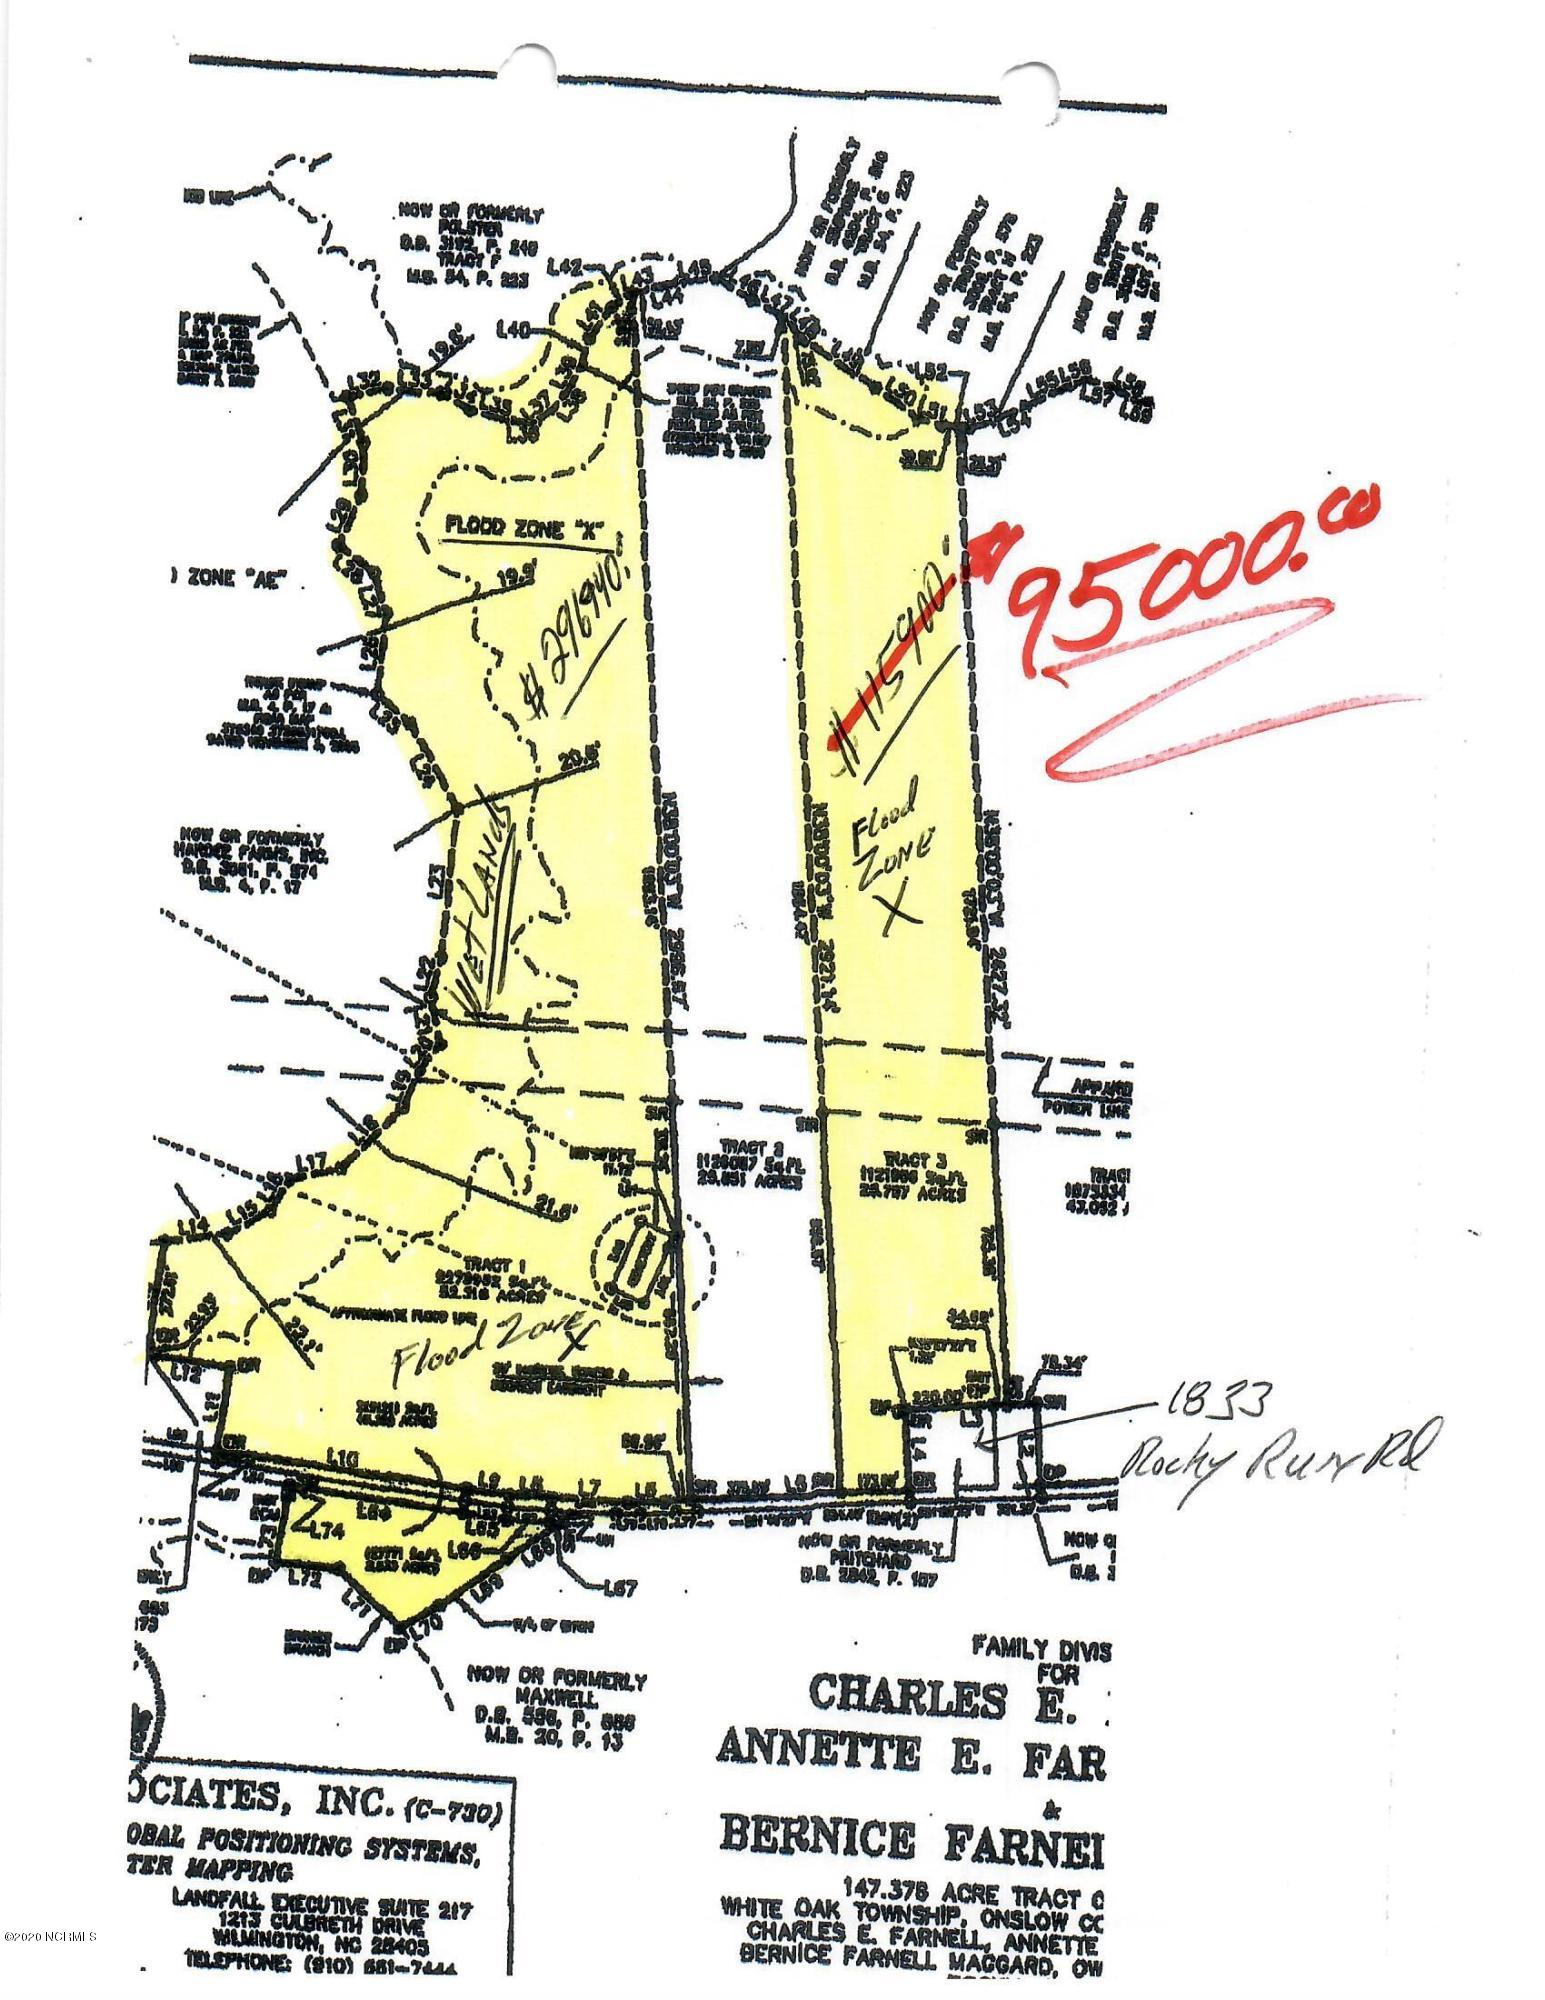 25.76 Acres According to tax records. Old Family estate already divided, other parcels may be Possible. Part Farm Land, Part Woods.